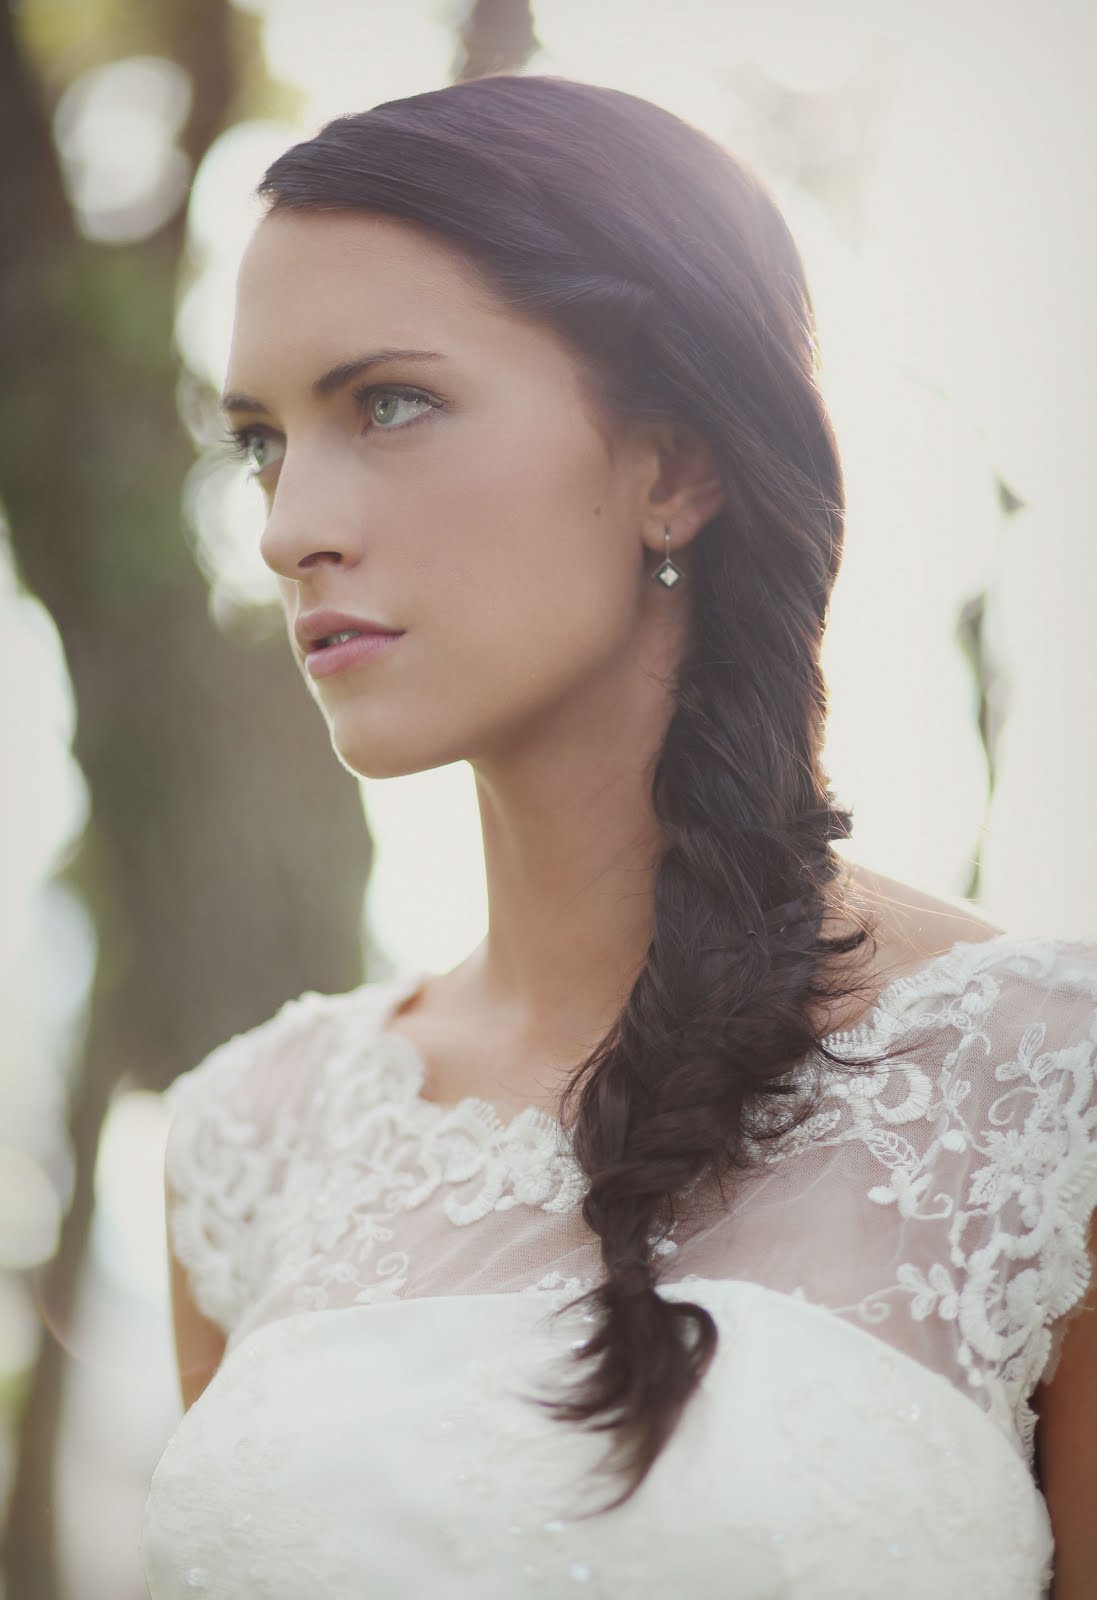 Wedding Hairstyles With Braids For Long Hair  10 Bridal Hairstyle Ideas for Fine Hair Hair World Magazine